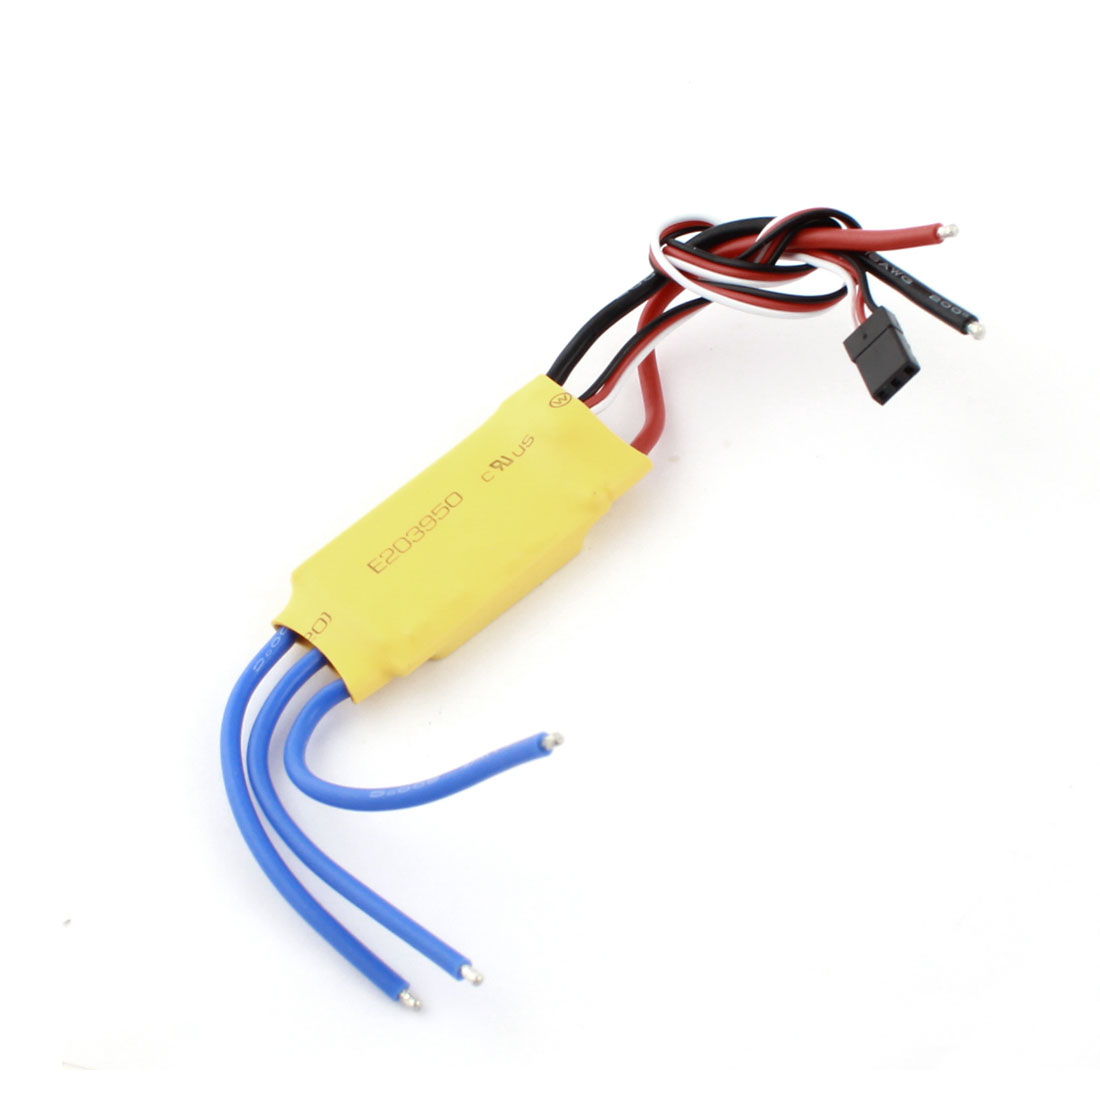 30A Brushless Motor Speed Controller Regulator BEC ESC Yellow for RC Helicopter